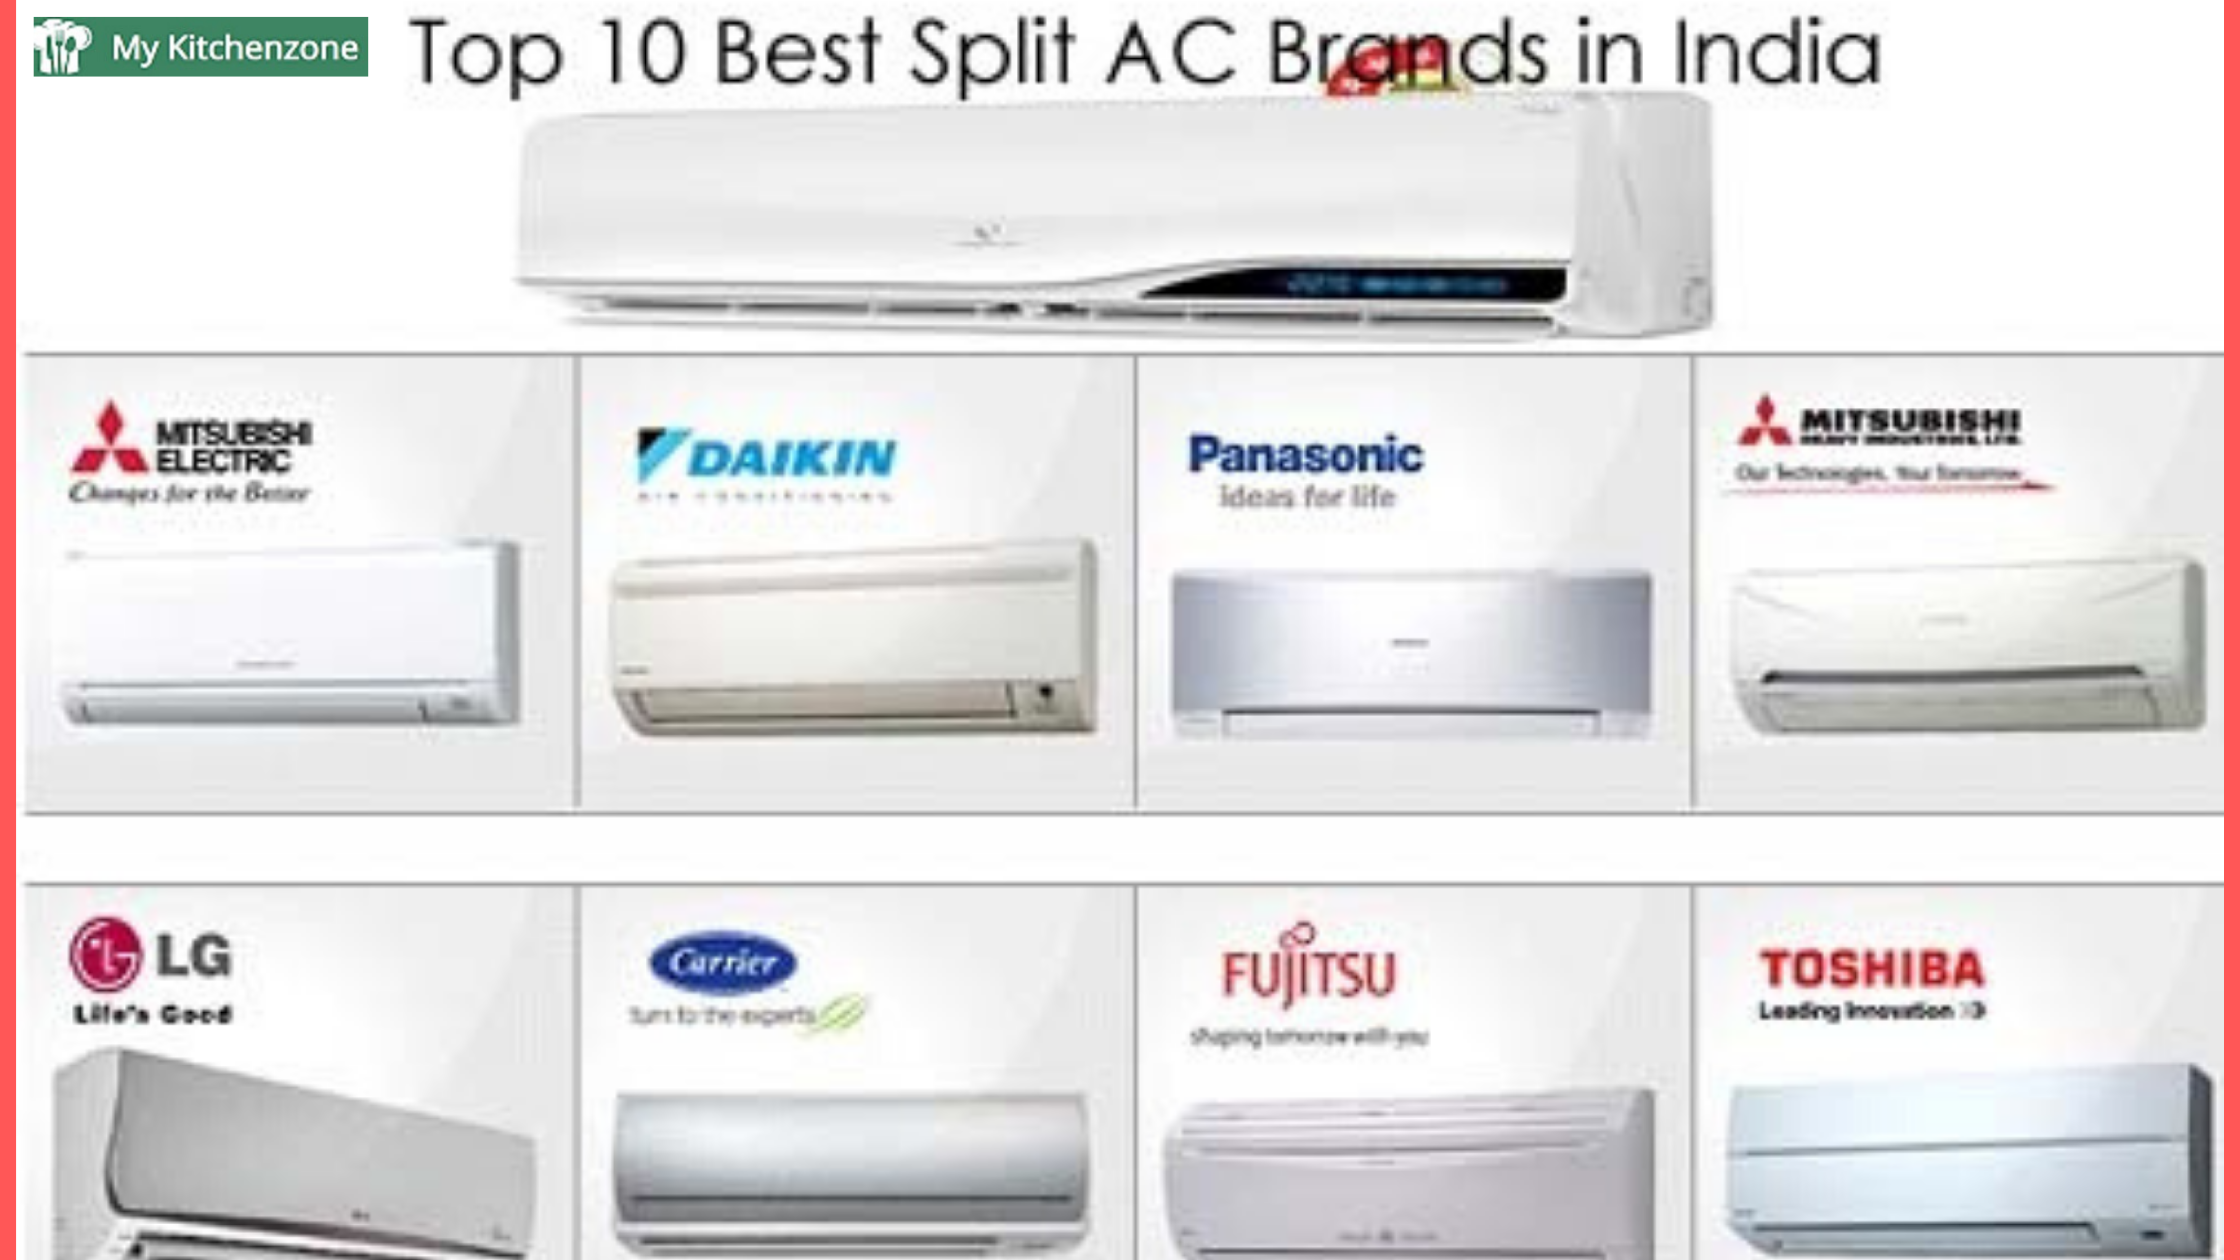 If you are planning to buy top air conditioner brands in